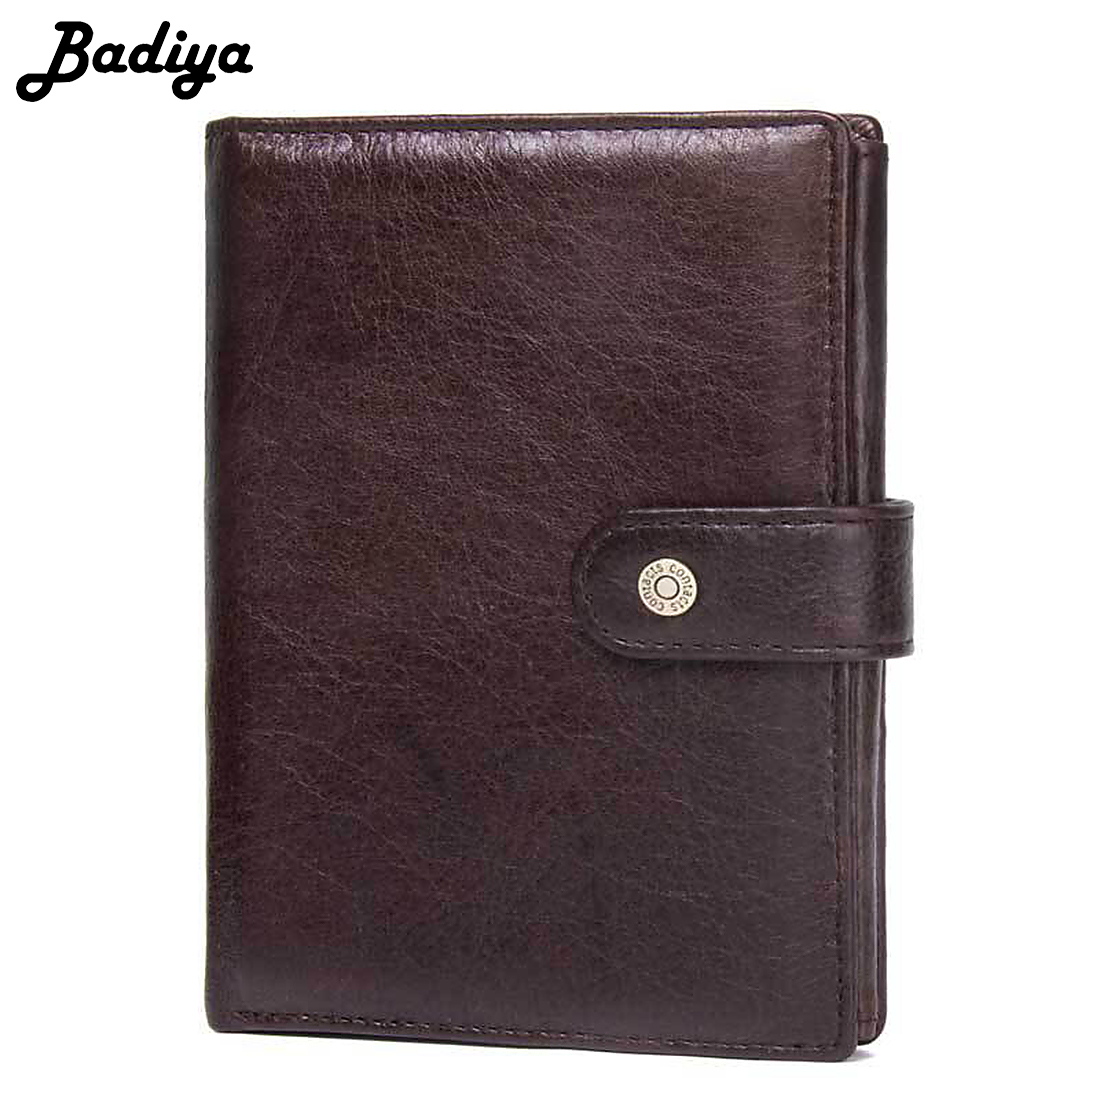 Vintage Men Genuine Leather Wallet Hasp Open Large Capacity Men Purse Card Holder Bifold Short Purse Clutch Coin Pocket Wallets contact s genuine leather men wallets vintage hasp coin purse pocket with card holder italy leather zipper male short wallet